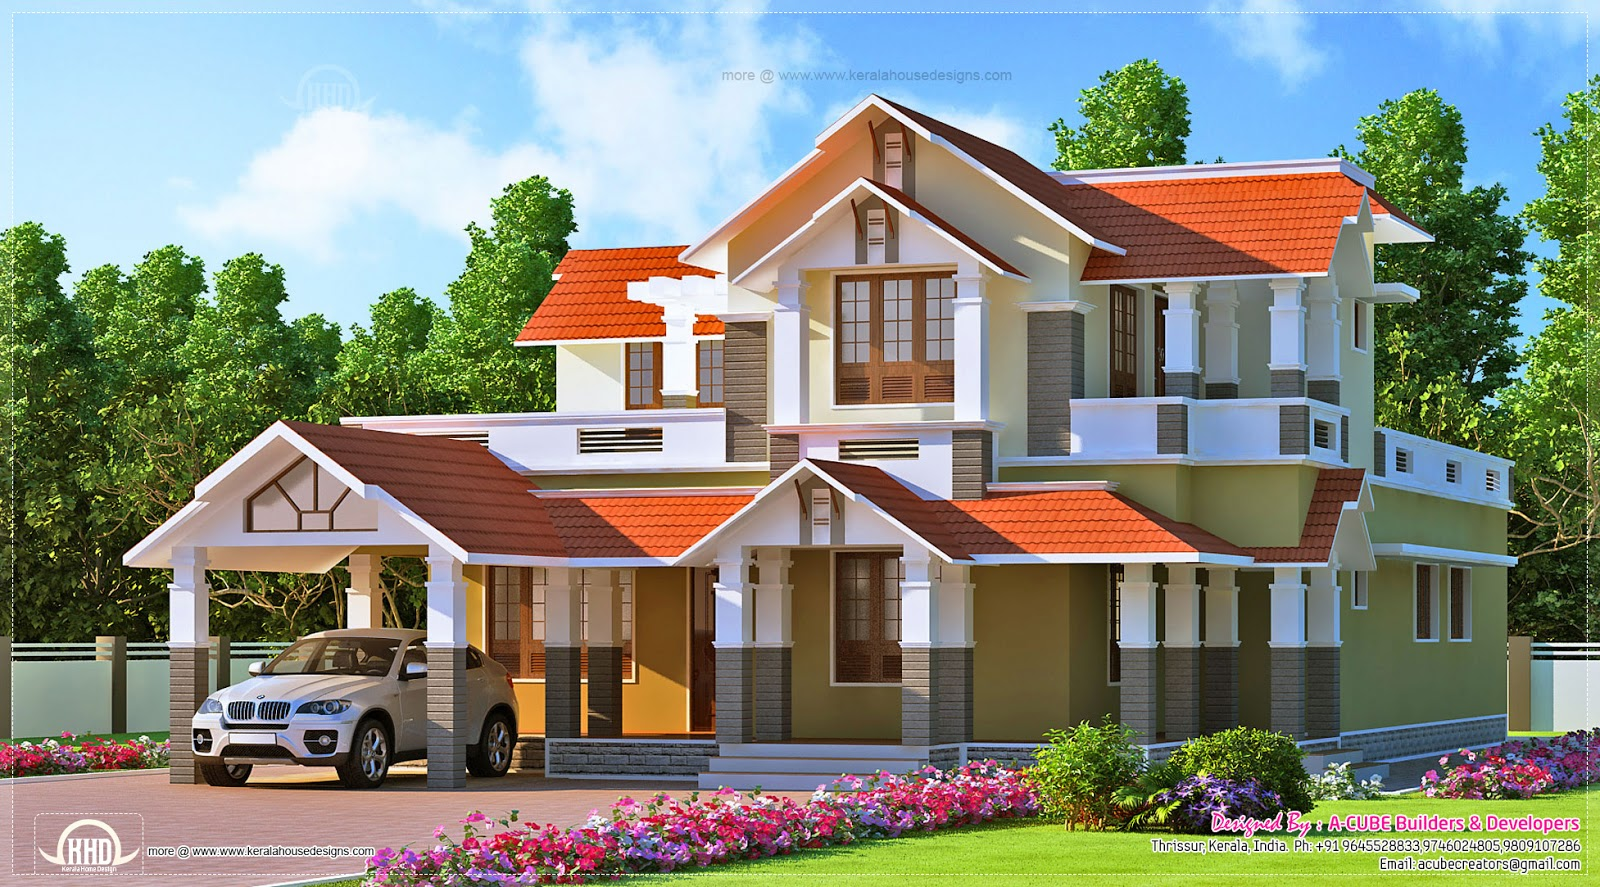 kerala style dream home design in 2900 sq feet house